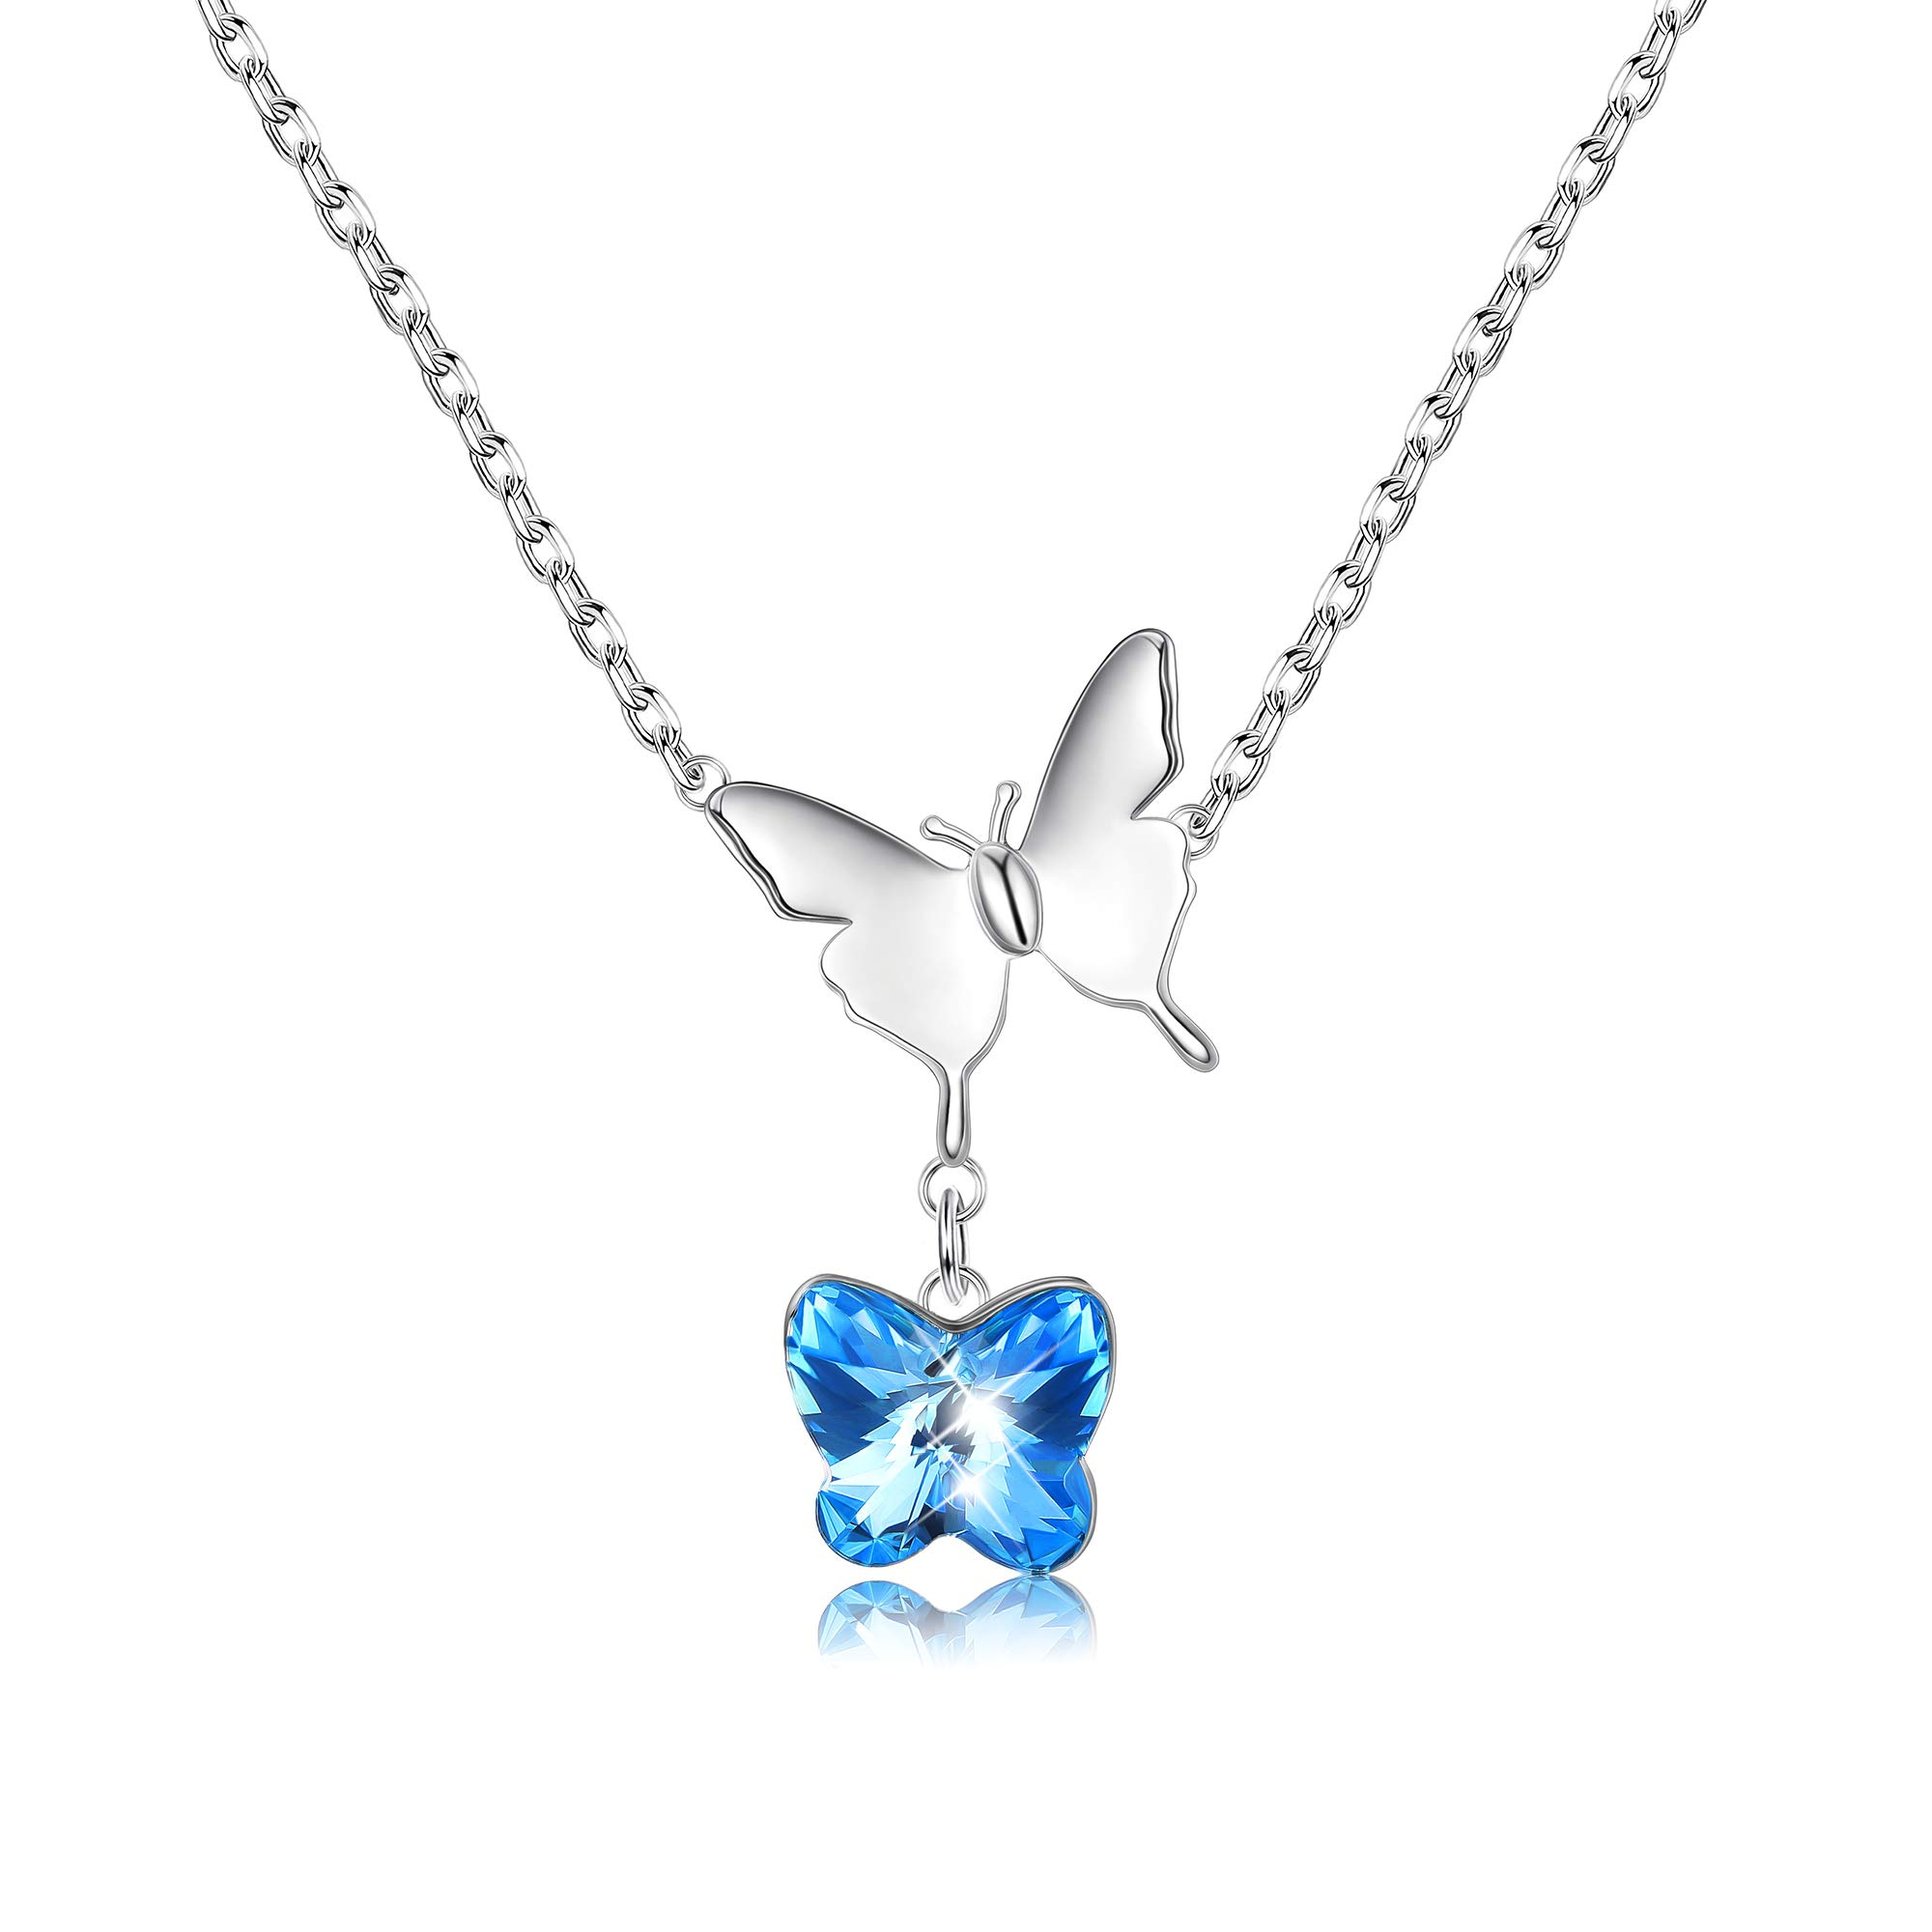 Sllaiss 925 Sterling Silver Butterfly Necklace Blue Crystal from Swarovski Butterfly Pendant for Women Boxed Valentine's Day Gift